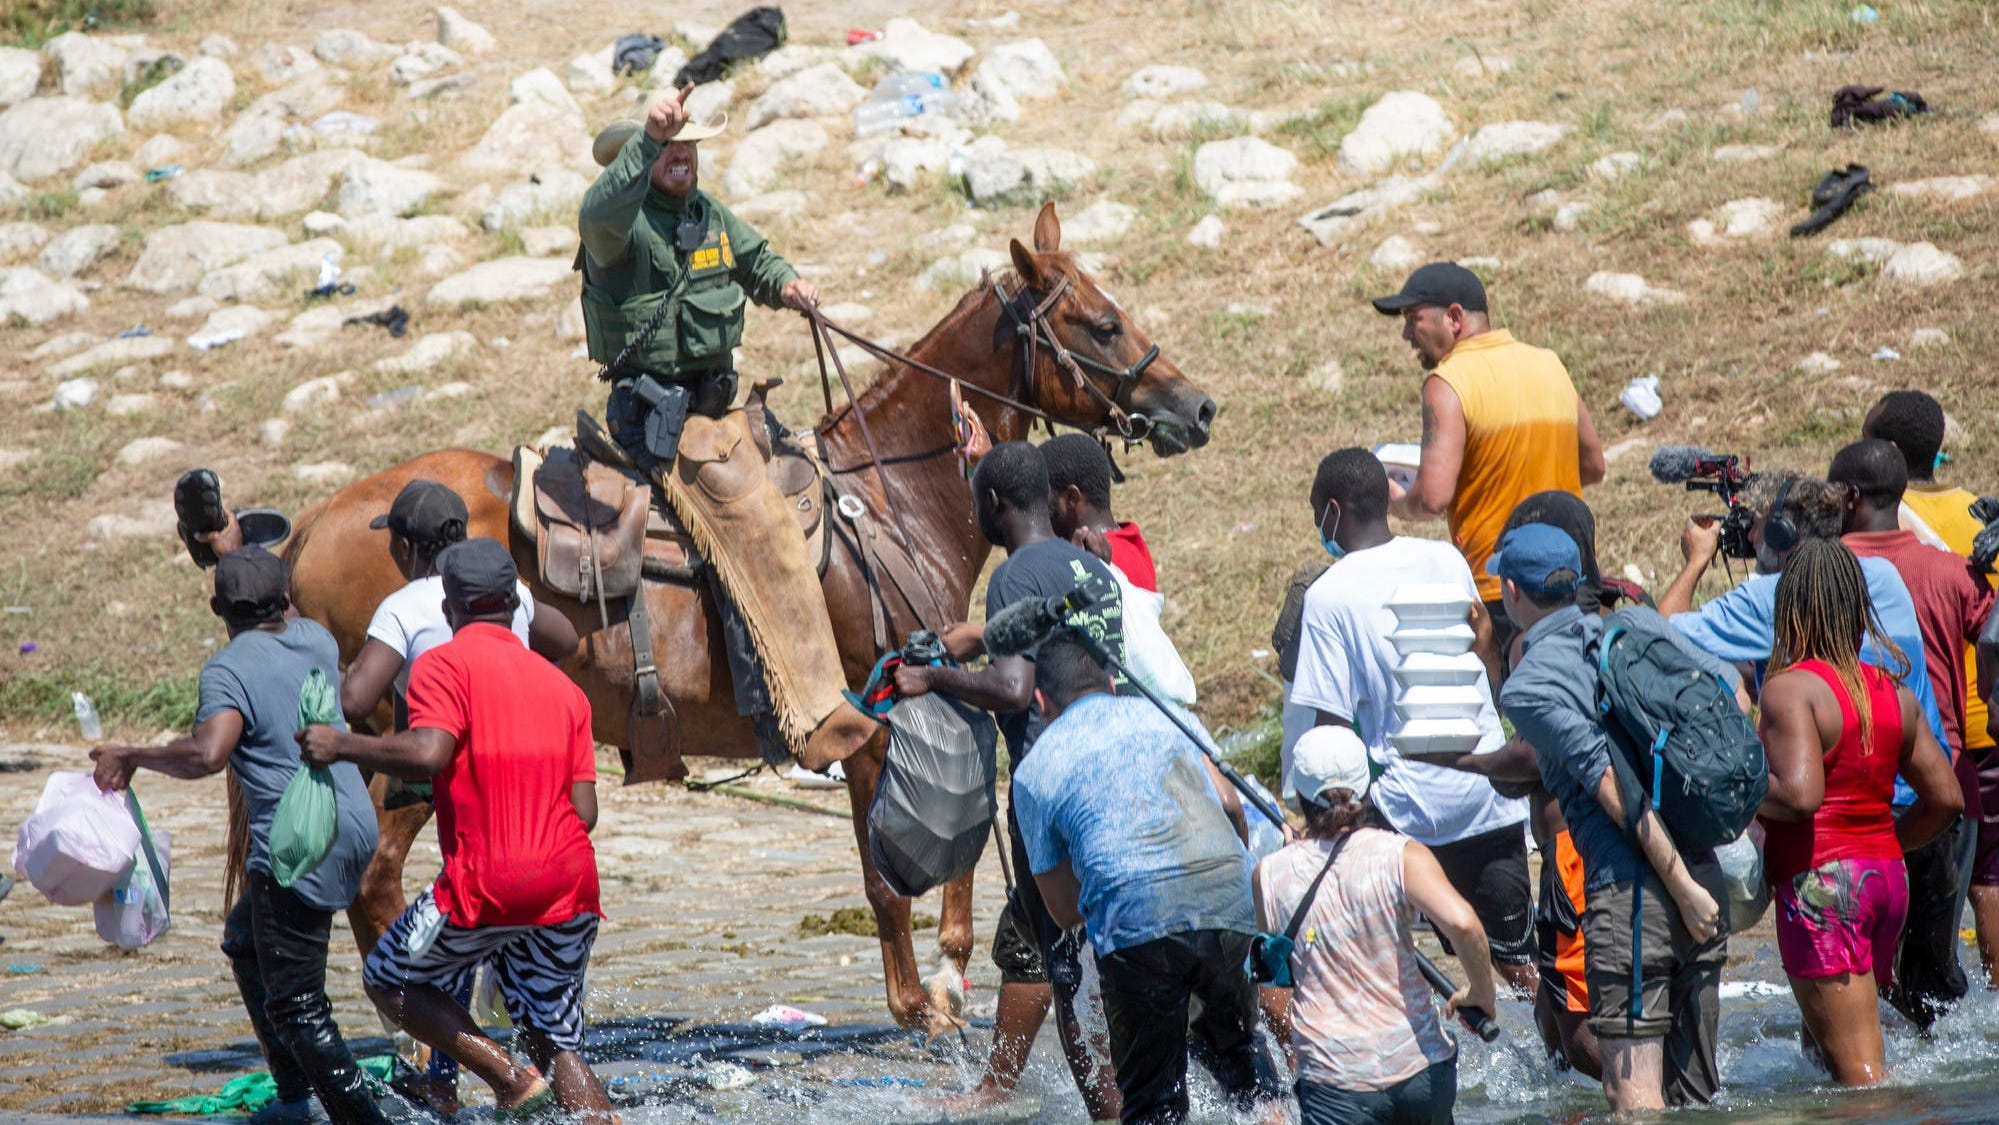 U.S. Border Patrol agents deter Haitians from returning to the U.S. on the bank of the Rio Grande after migrants crossed back to Mexico for food and water on Sept. 19, 2021.